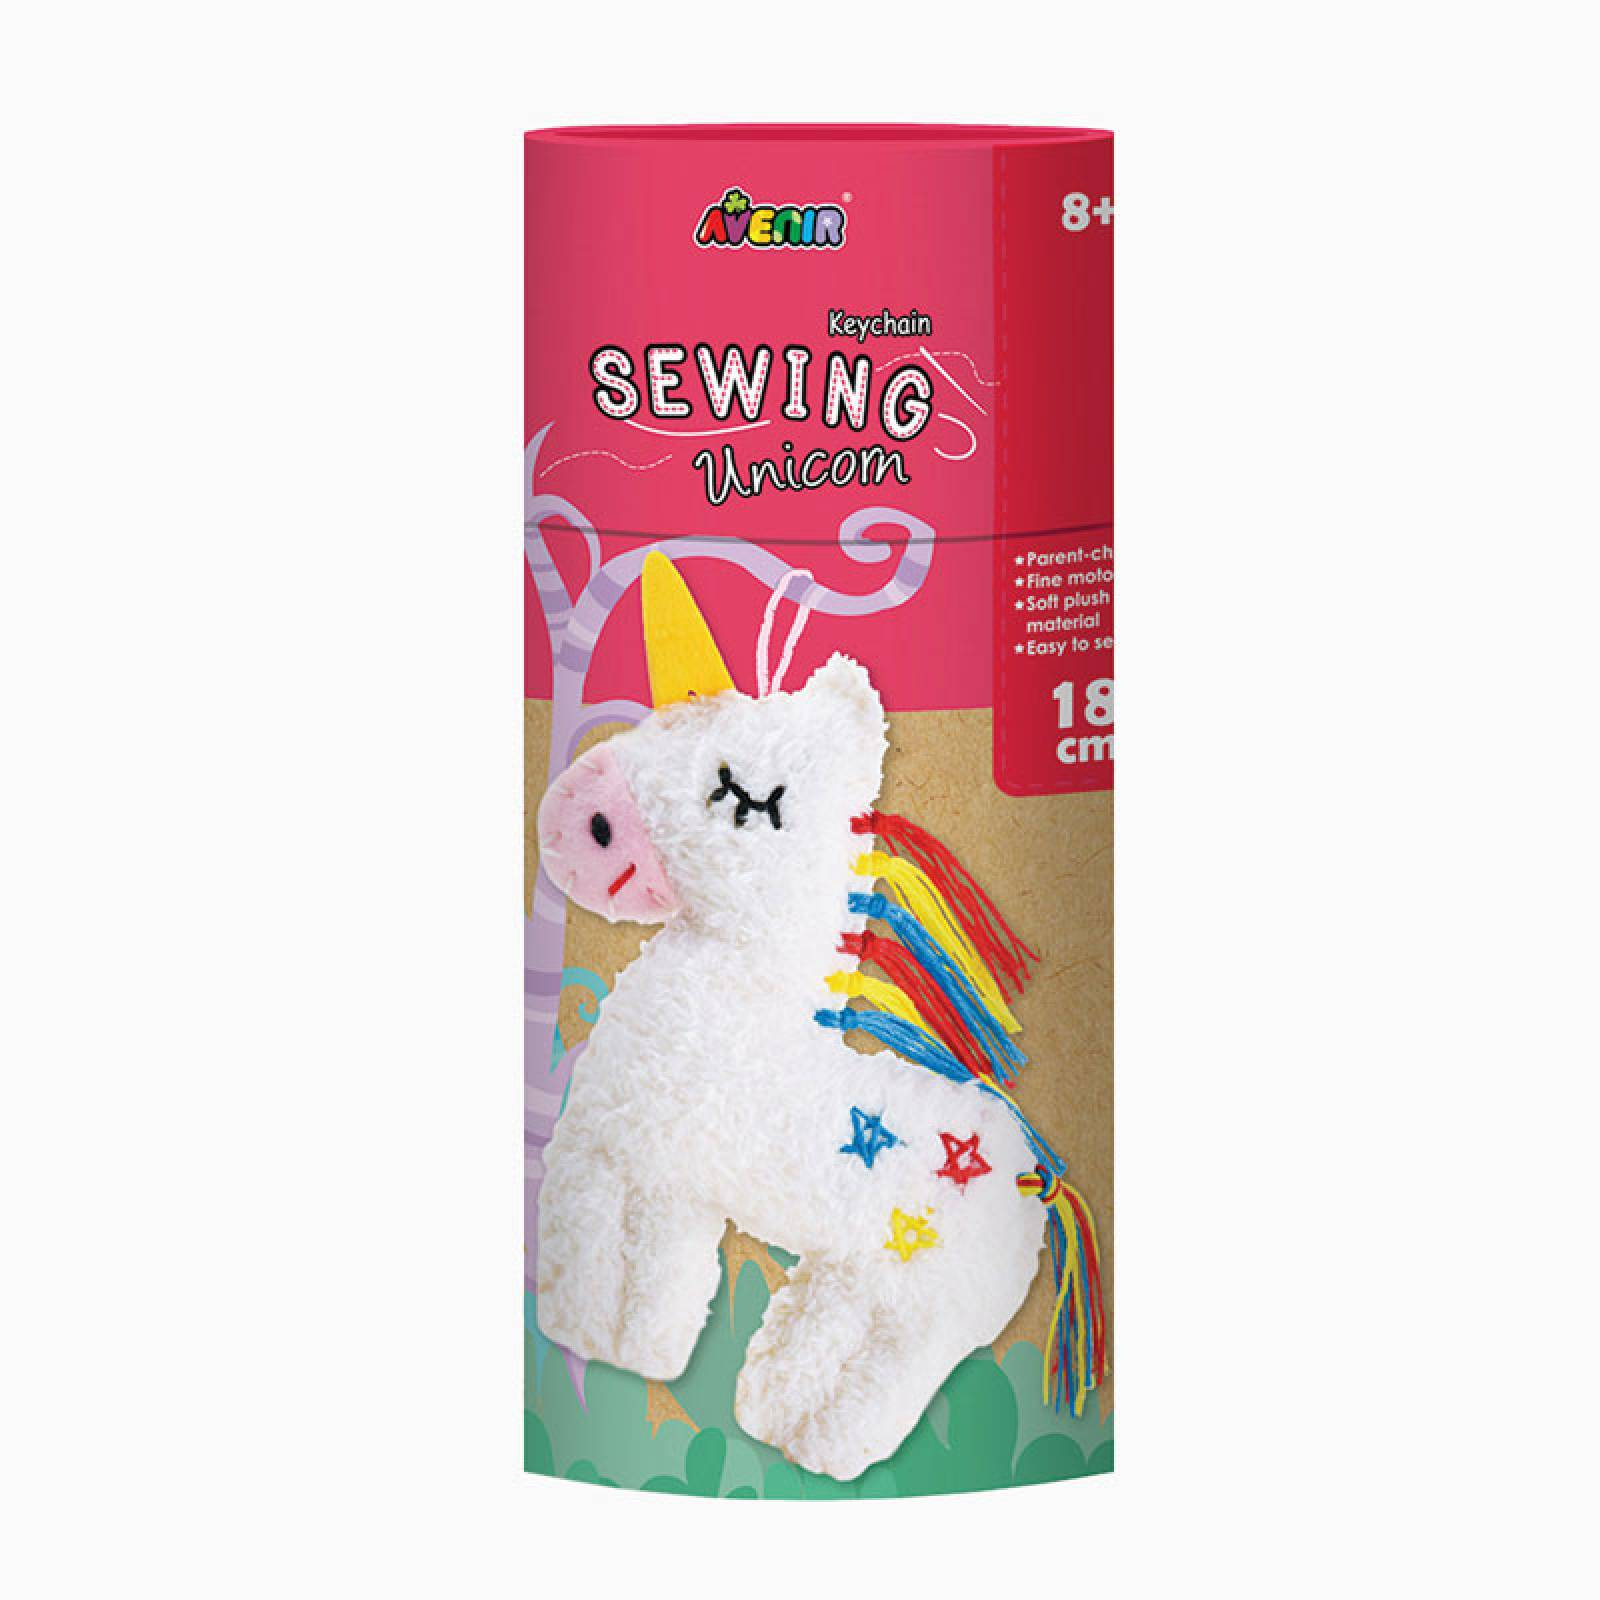 Keychain Sewing Kit - Unicorn 8+